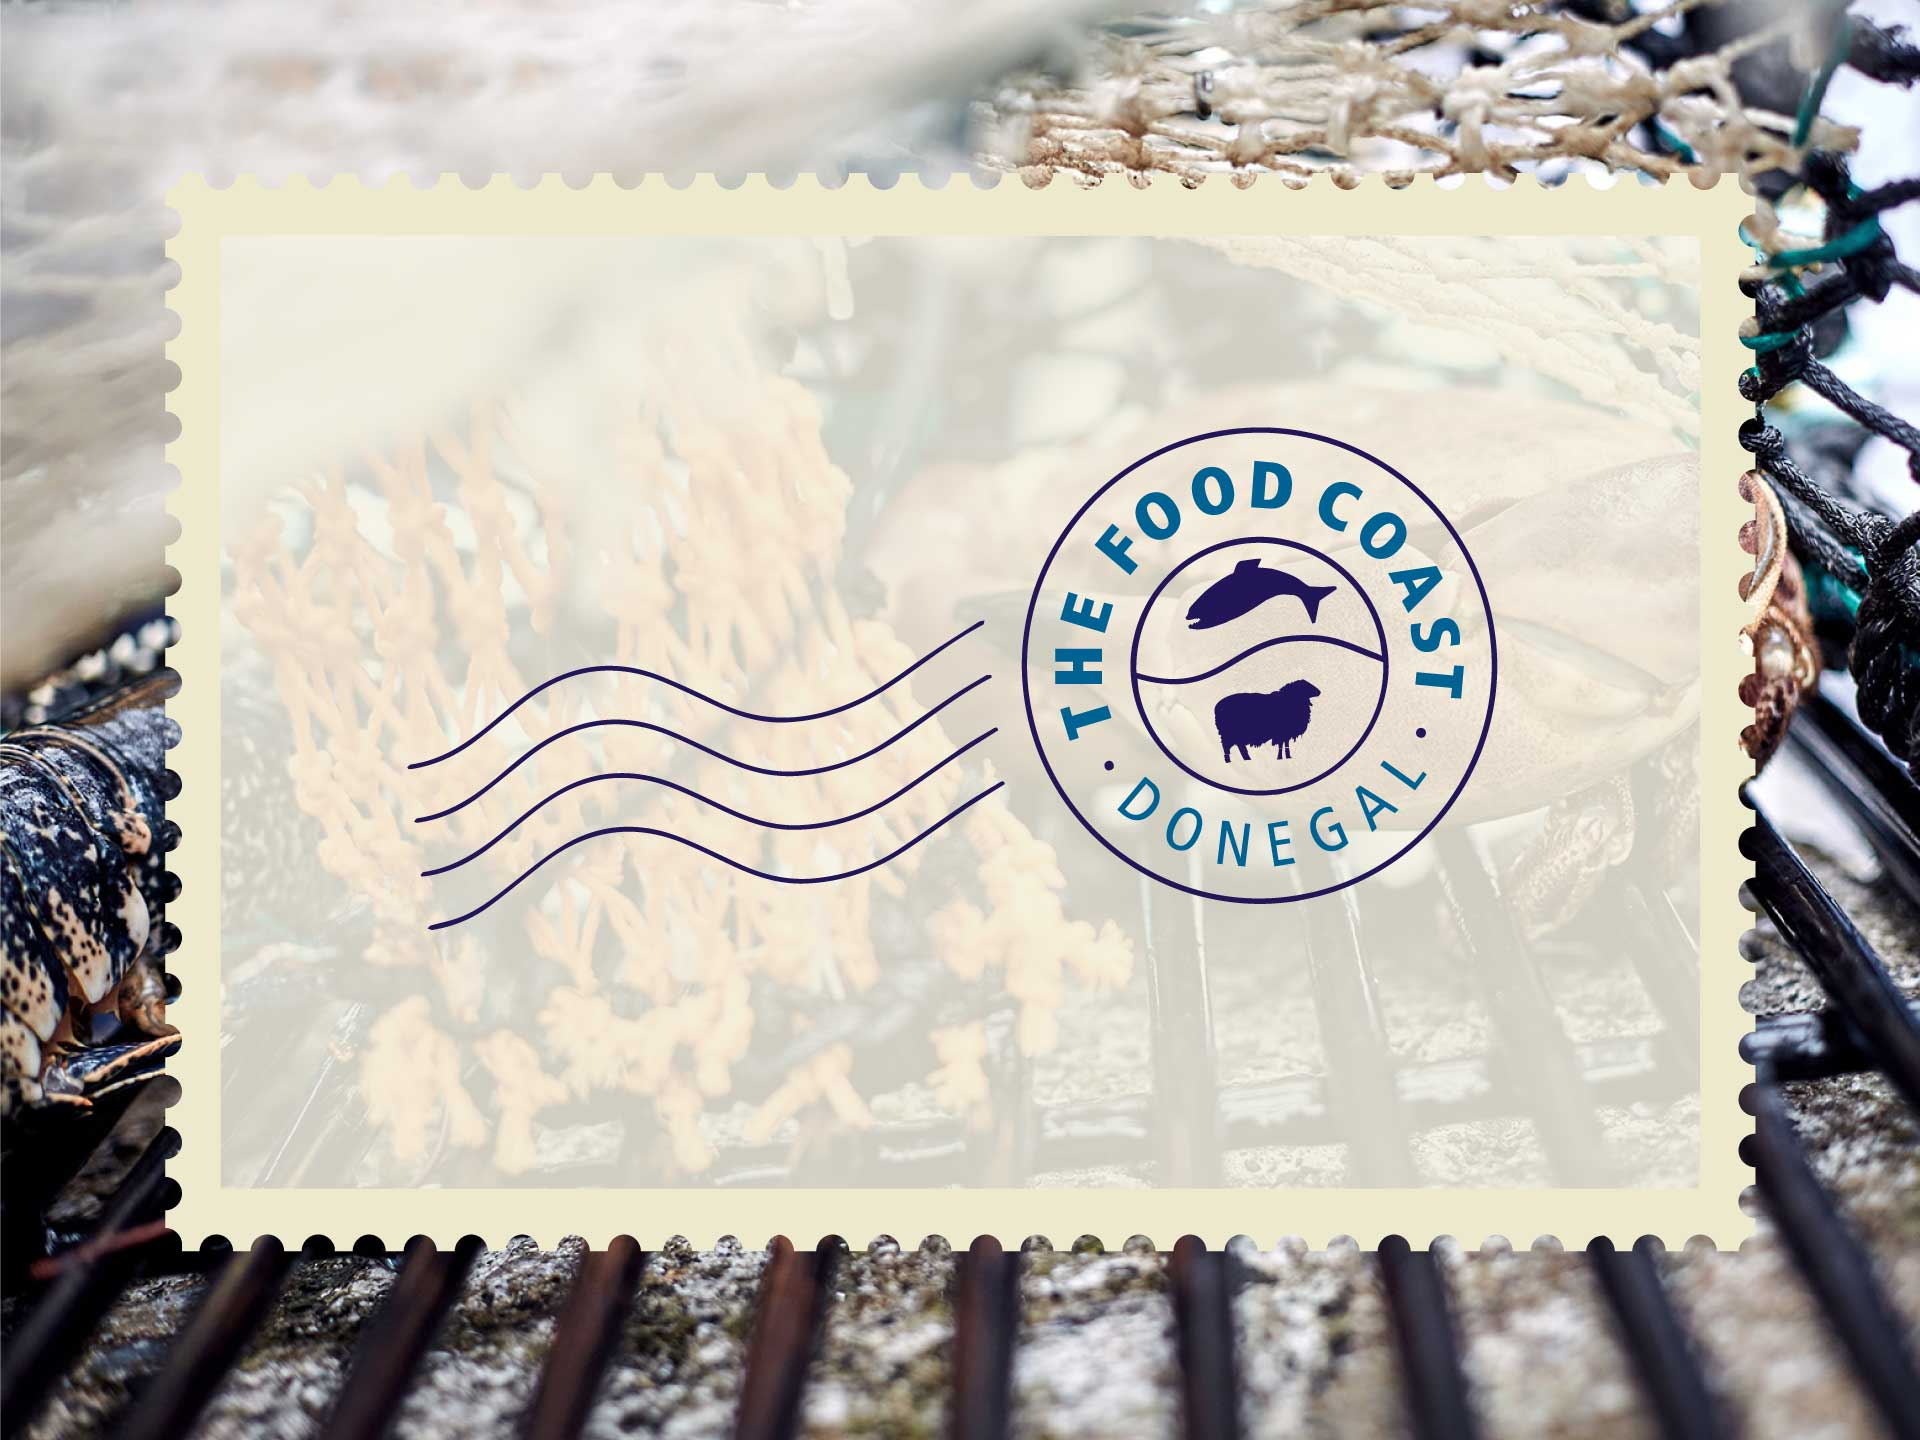 Food Coast Donegal e-Newsletter